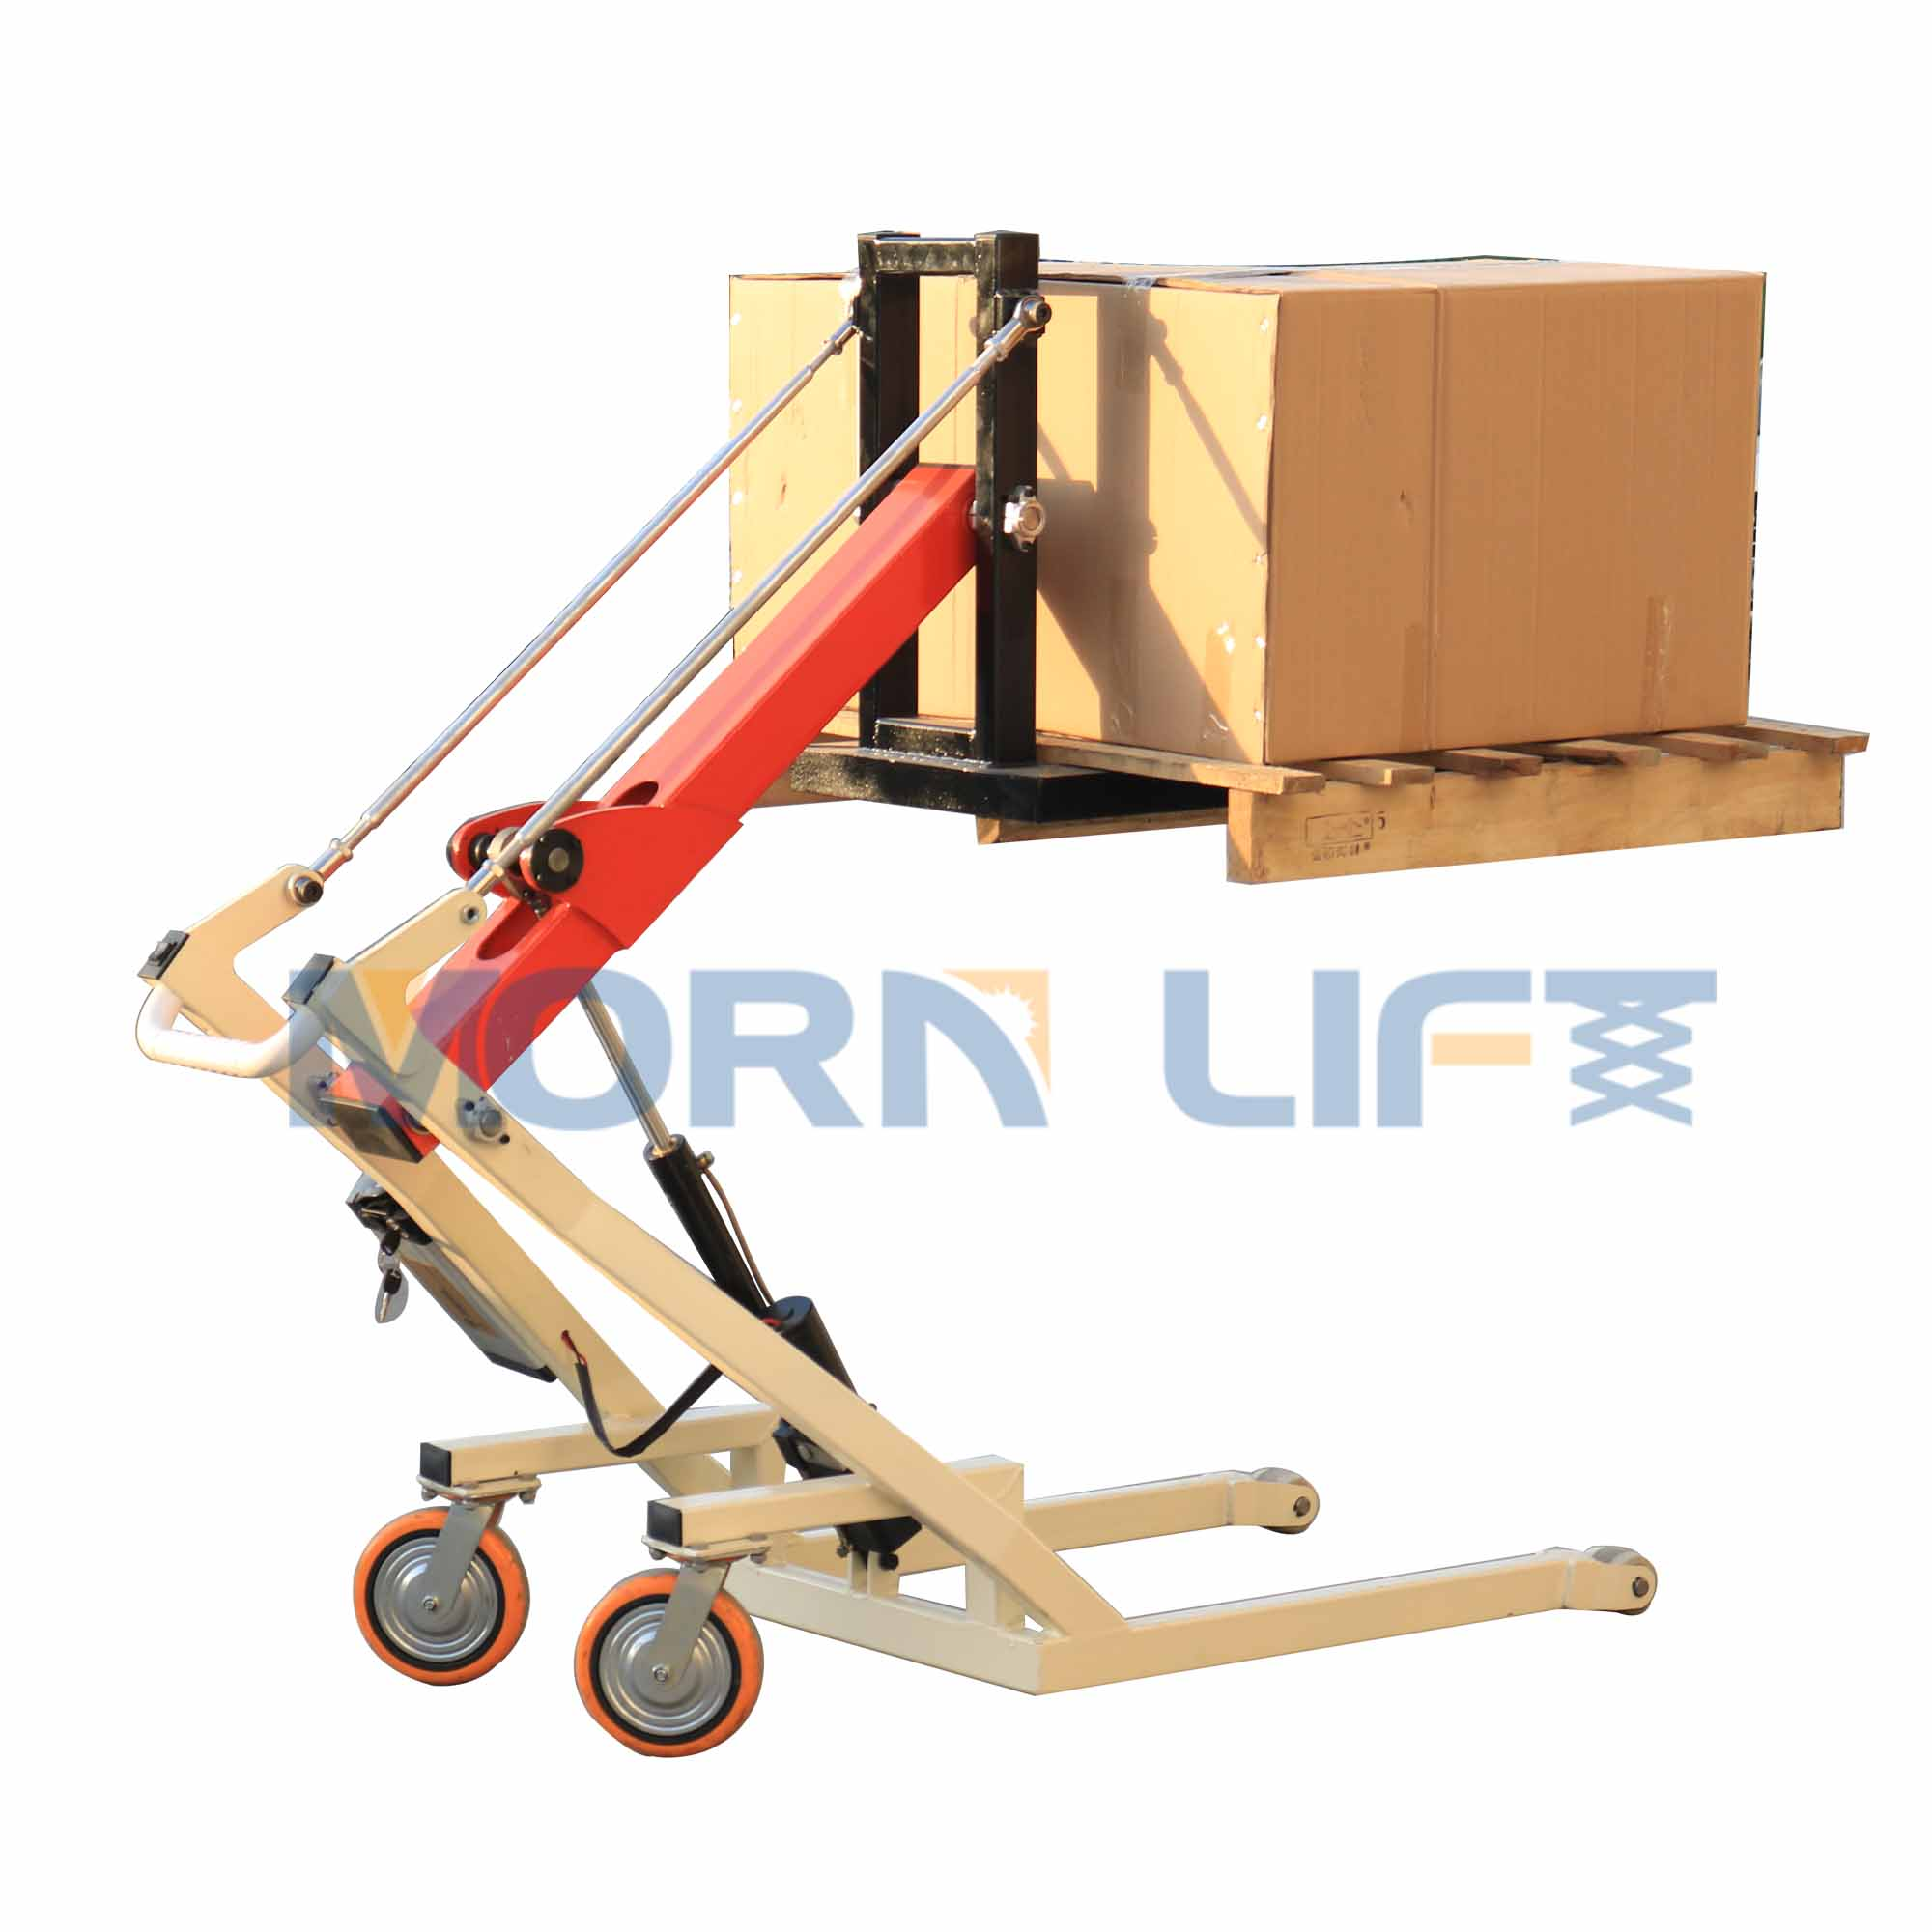 Smart Small Forklift For Warehouse Logistics Supermarket Simple Operation Maximum Load Capacity 500kg